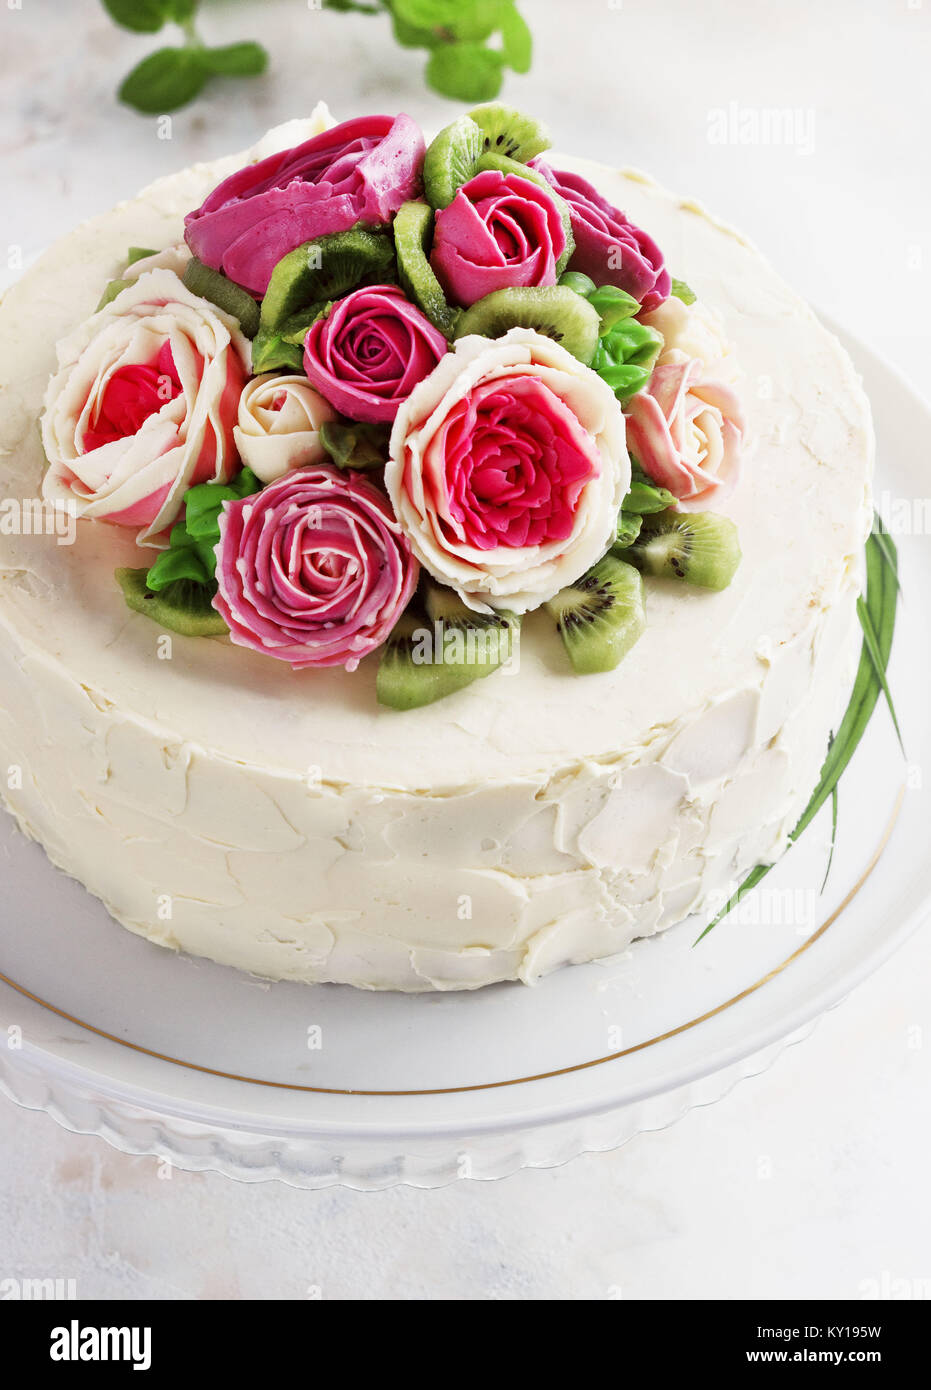 Birthday cake with flowers stock photos birthday cake with flowers birthday cake with flowers rose on white background stock image izmirmasajfo